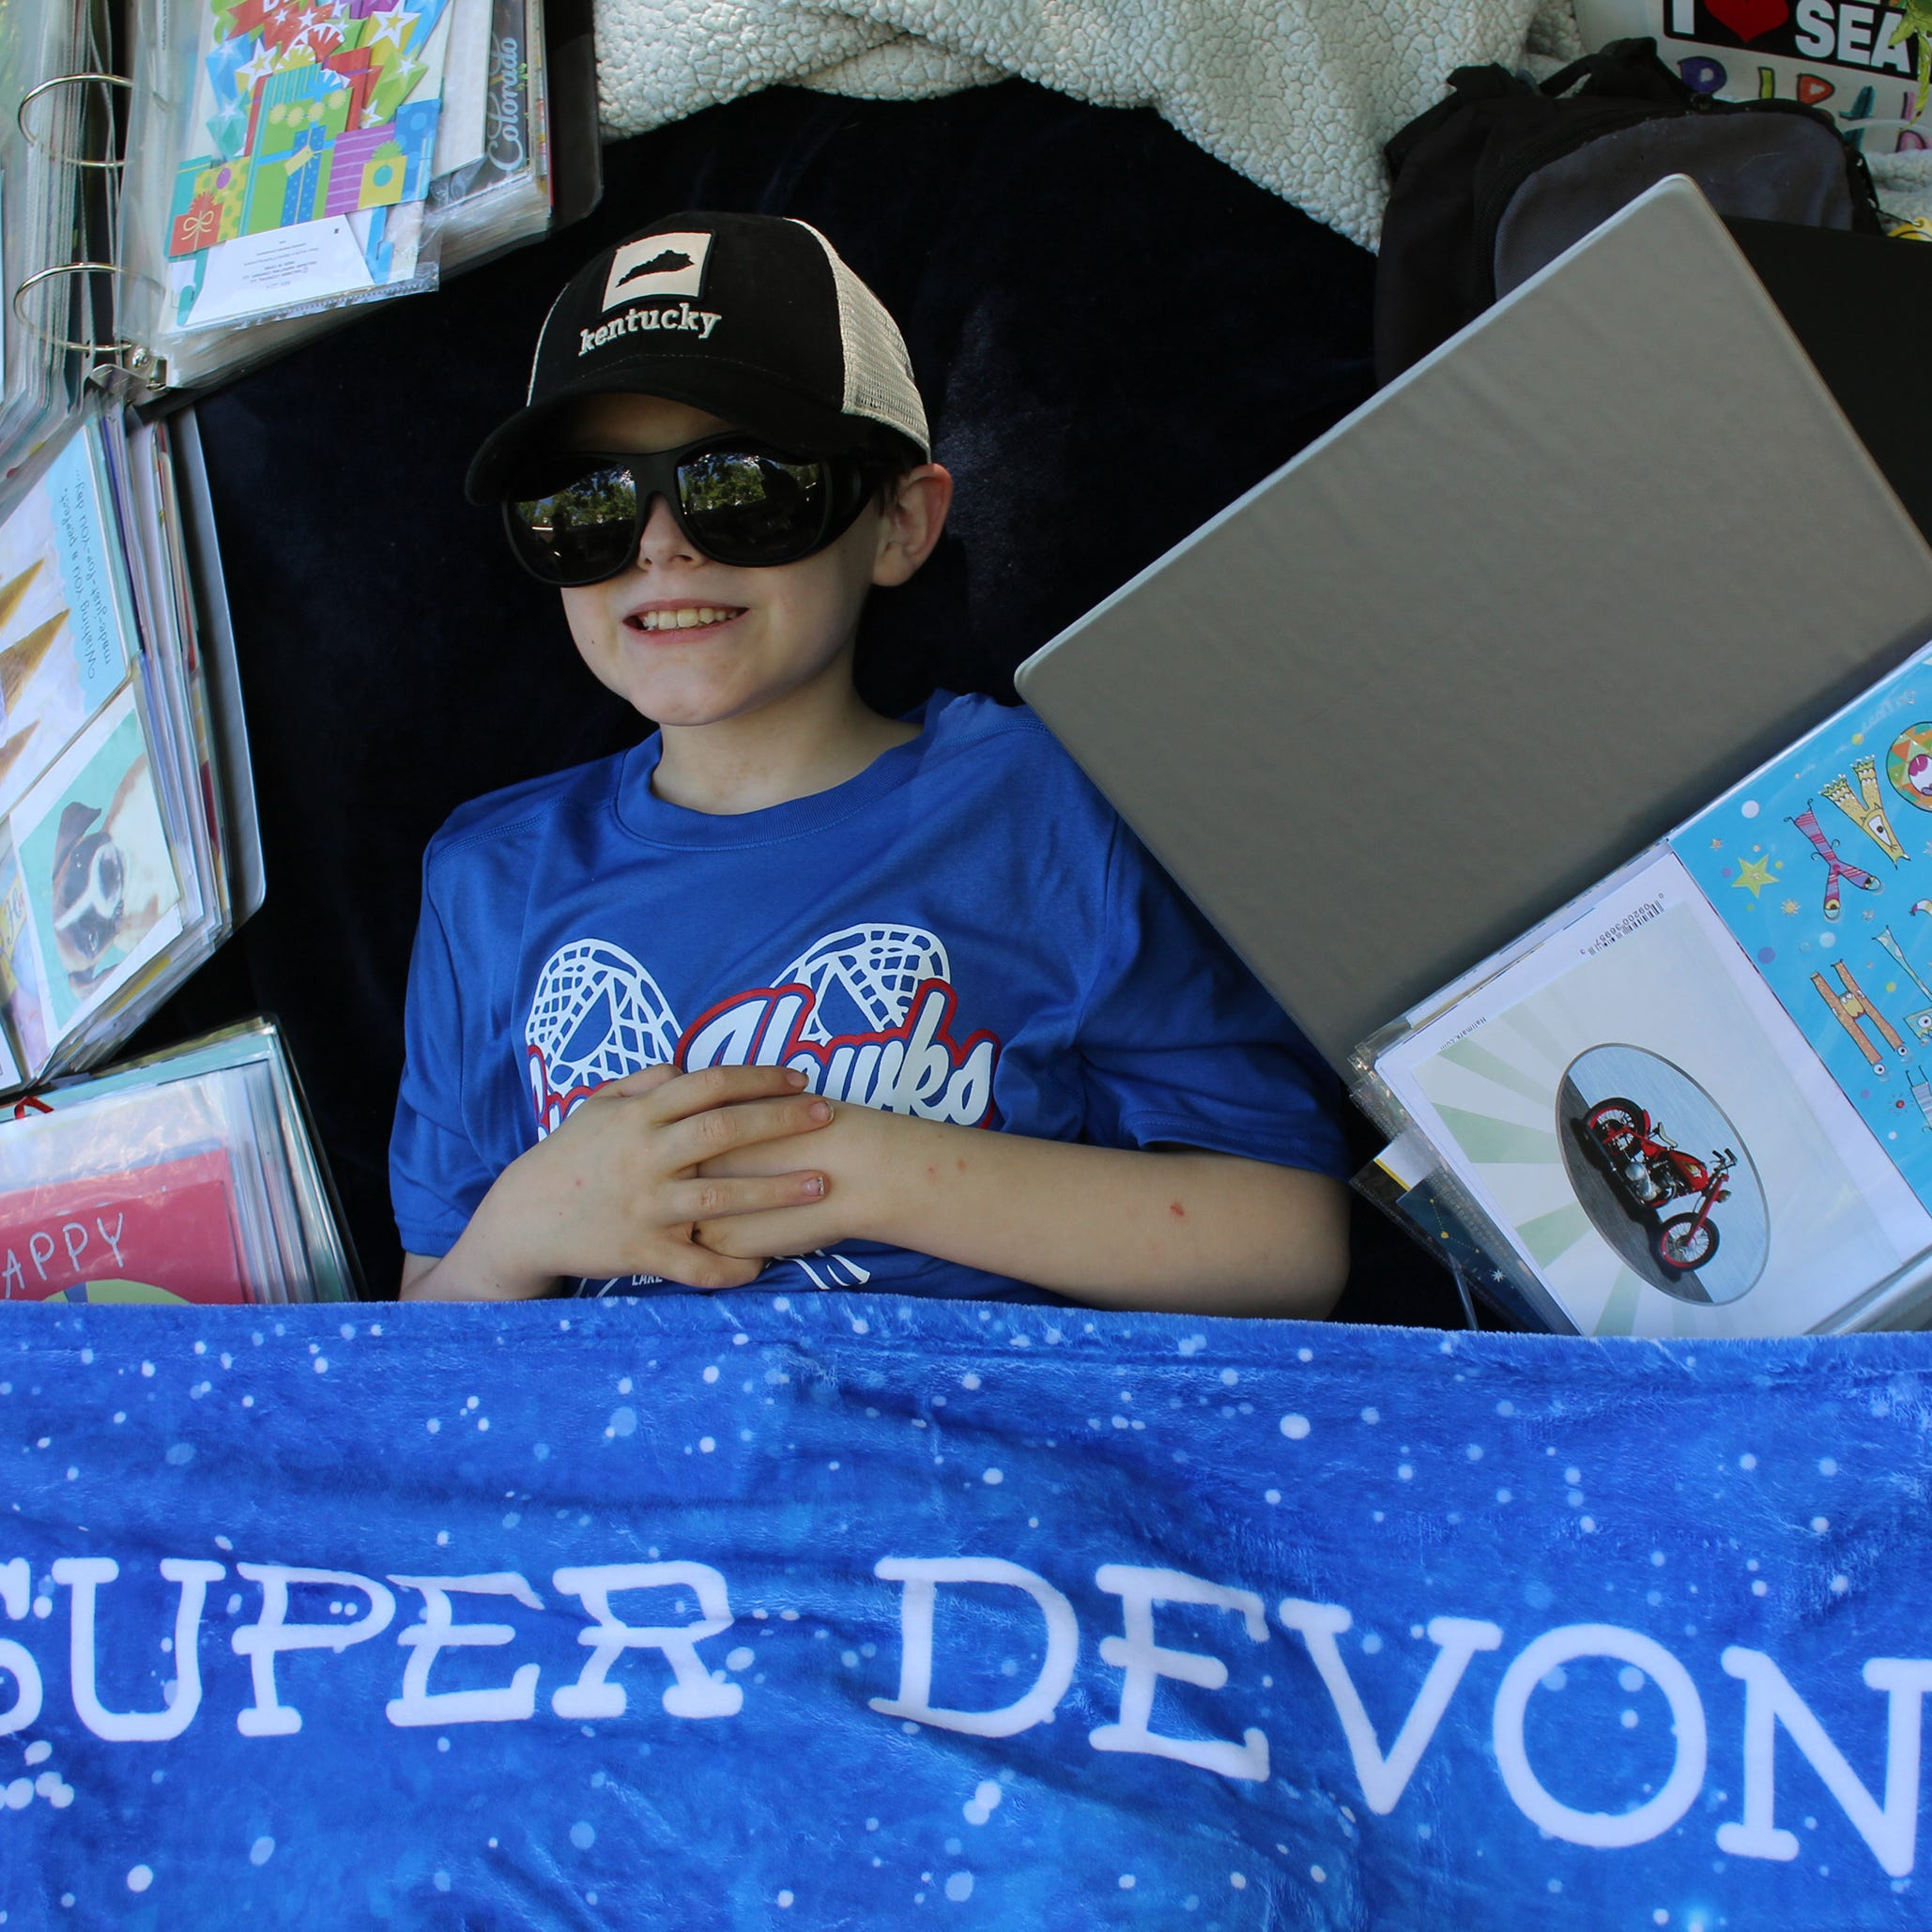 Devon Sweeney, the critically ill Tomahawk boy who for his 11th birthday received cards from all over the world, has died